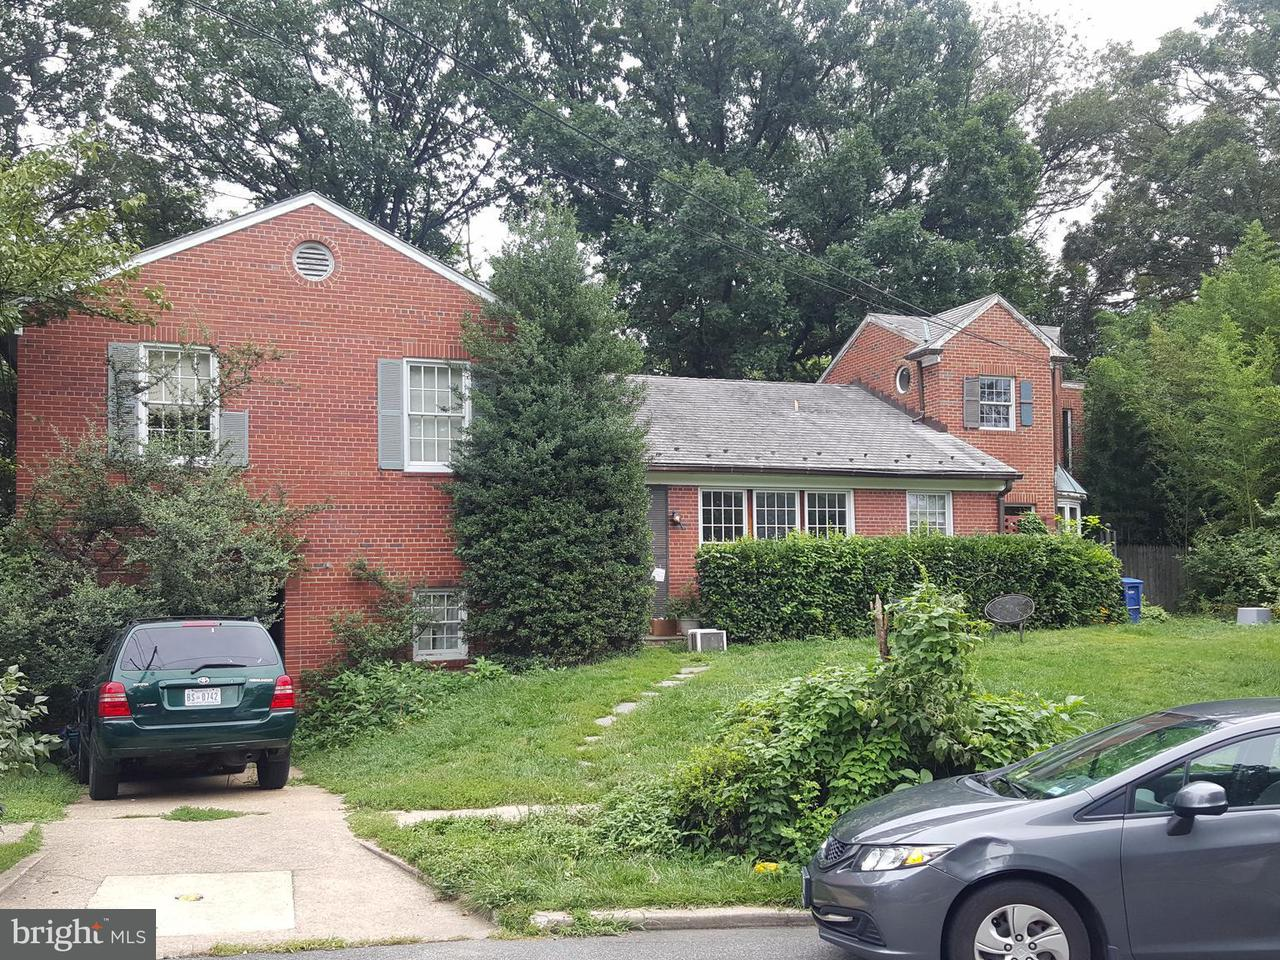 Single Family Home for Sale at 2901 Garfield Ter Nw 2901 Garfield Ter Nw Washington, District Of Columbia 20008 United States